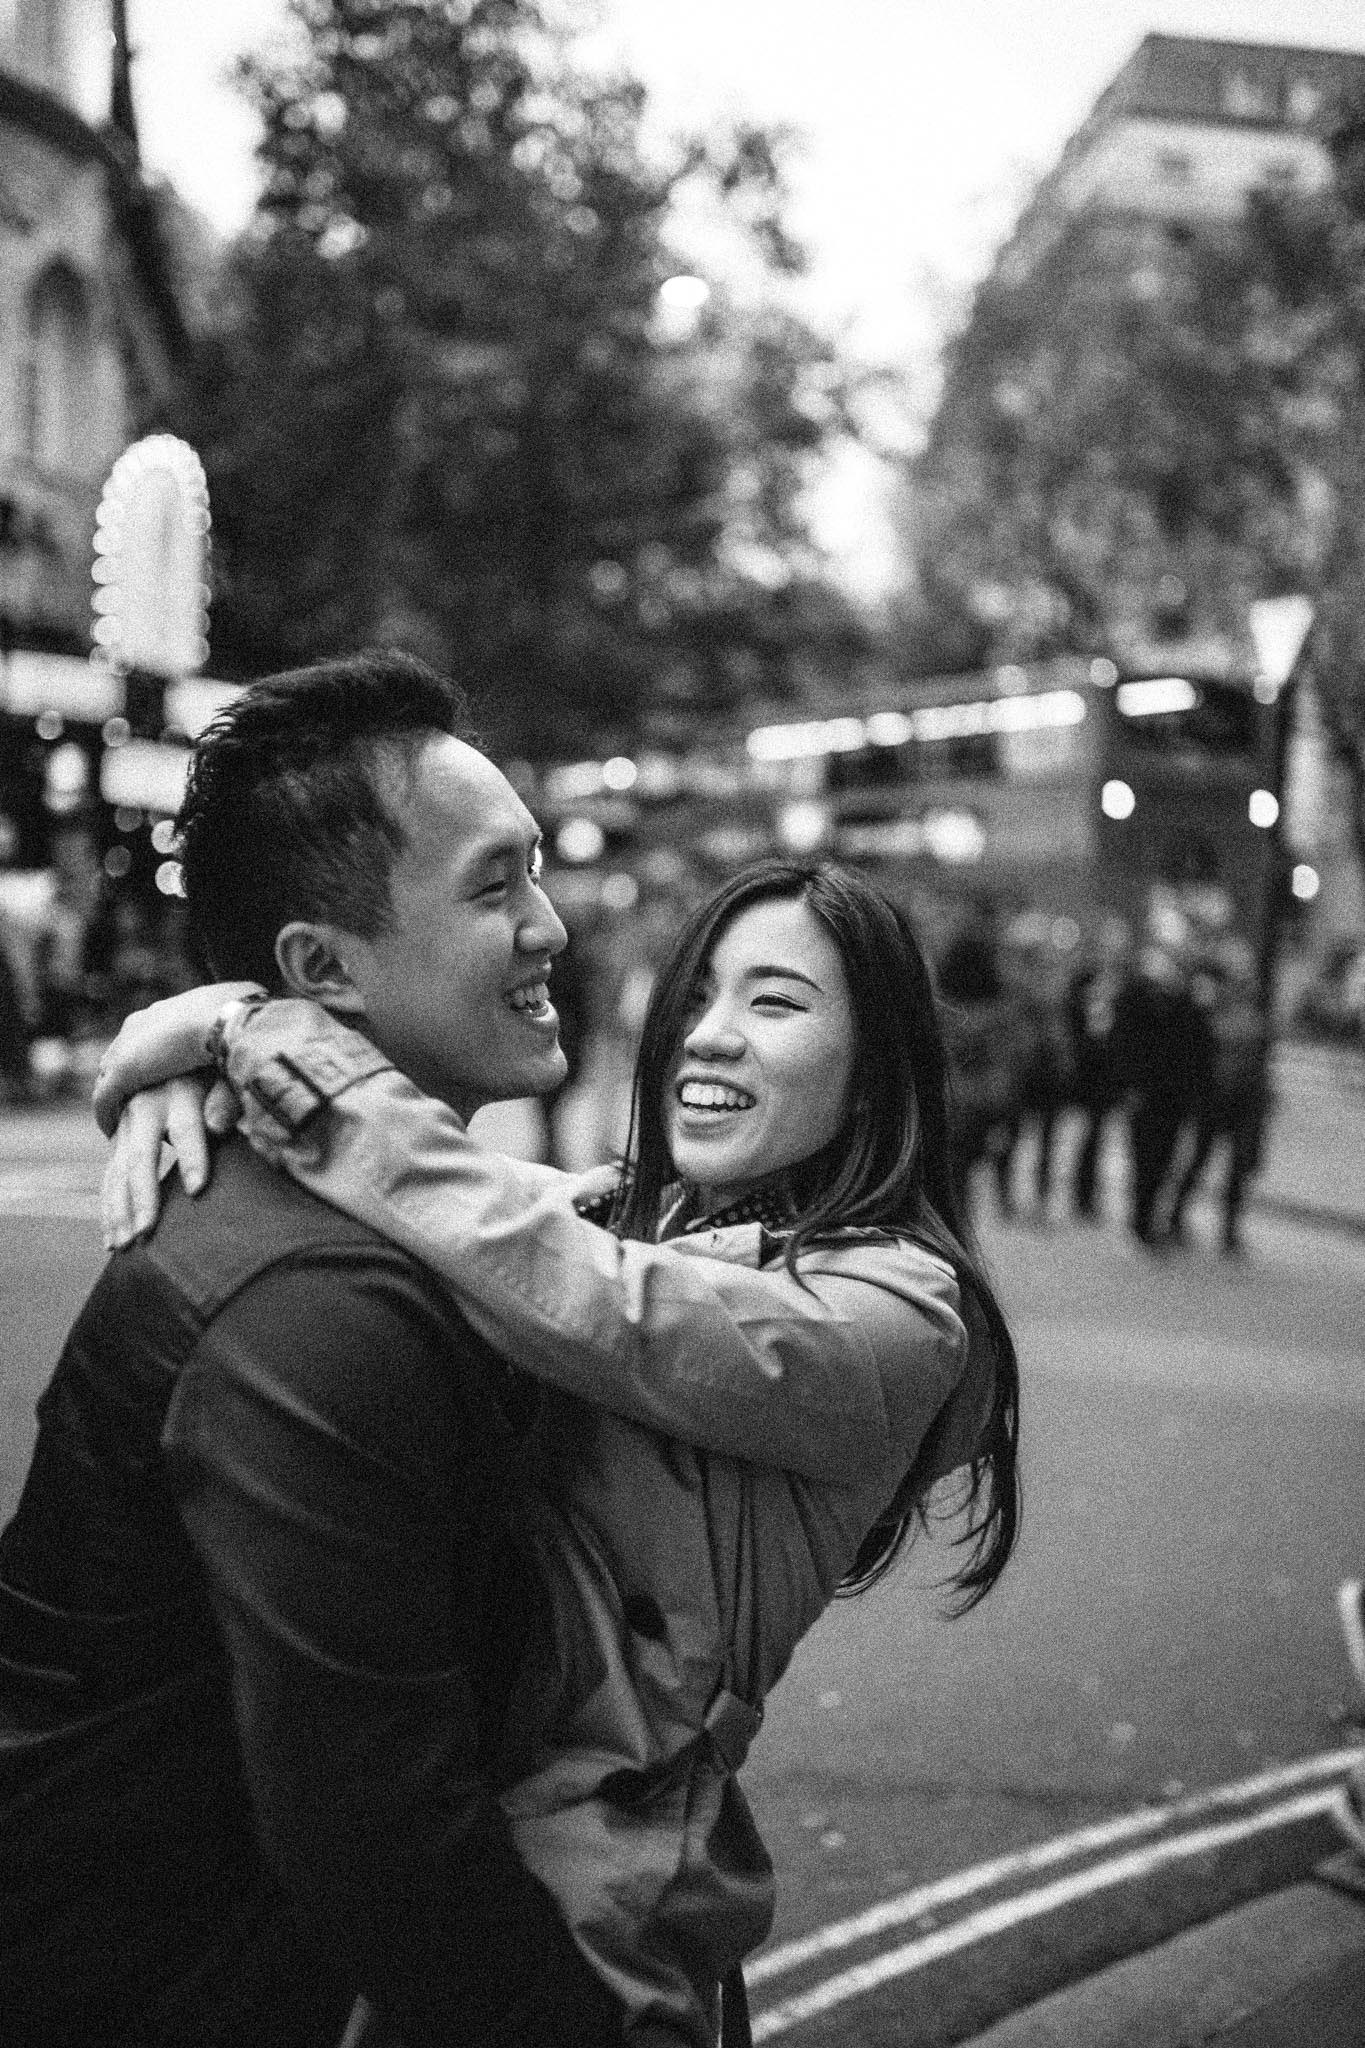 couple holiday photo shoot in london photographer